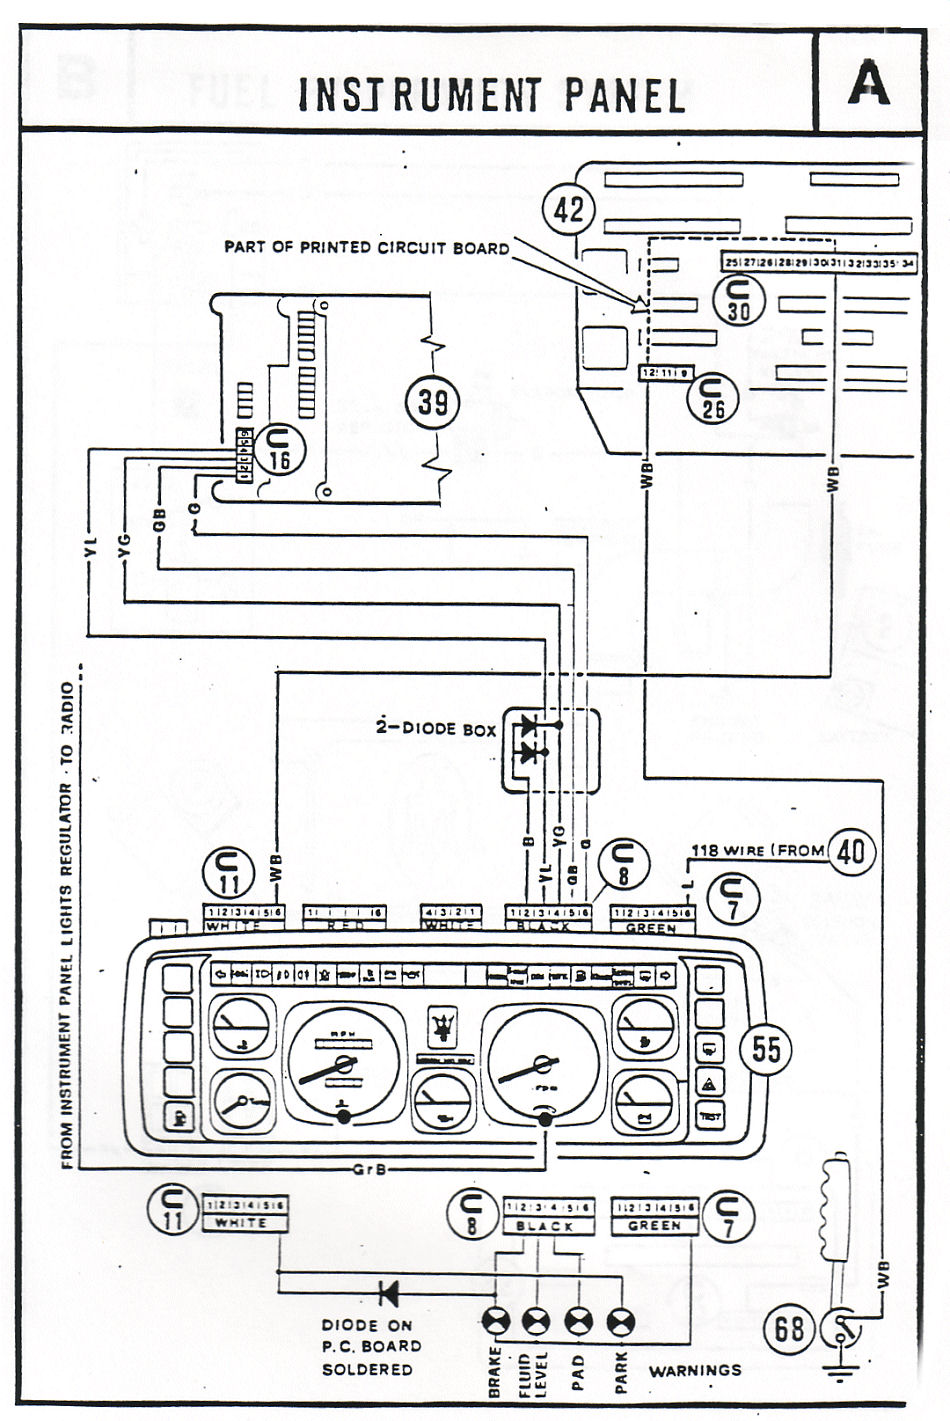 Alfieri155 8 Electrical System furthermore Maserati Quattroporte Wiring Diagrams together with 1997 Dodge Ram 1500 5 2l Vacuum Diagram as well 1948 Citroen 2cv Timing Chain Diagram in addition 1985 Chrysler Lebaron Wiring Diagram. on maserati biturbo engine